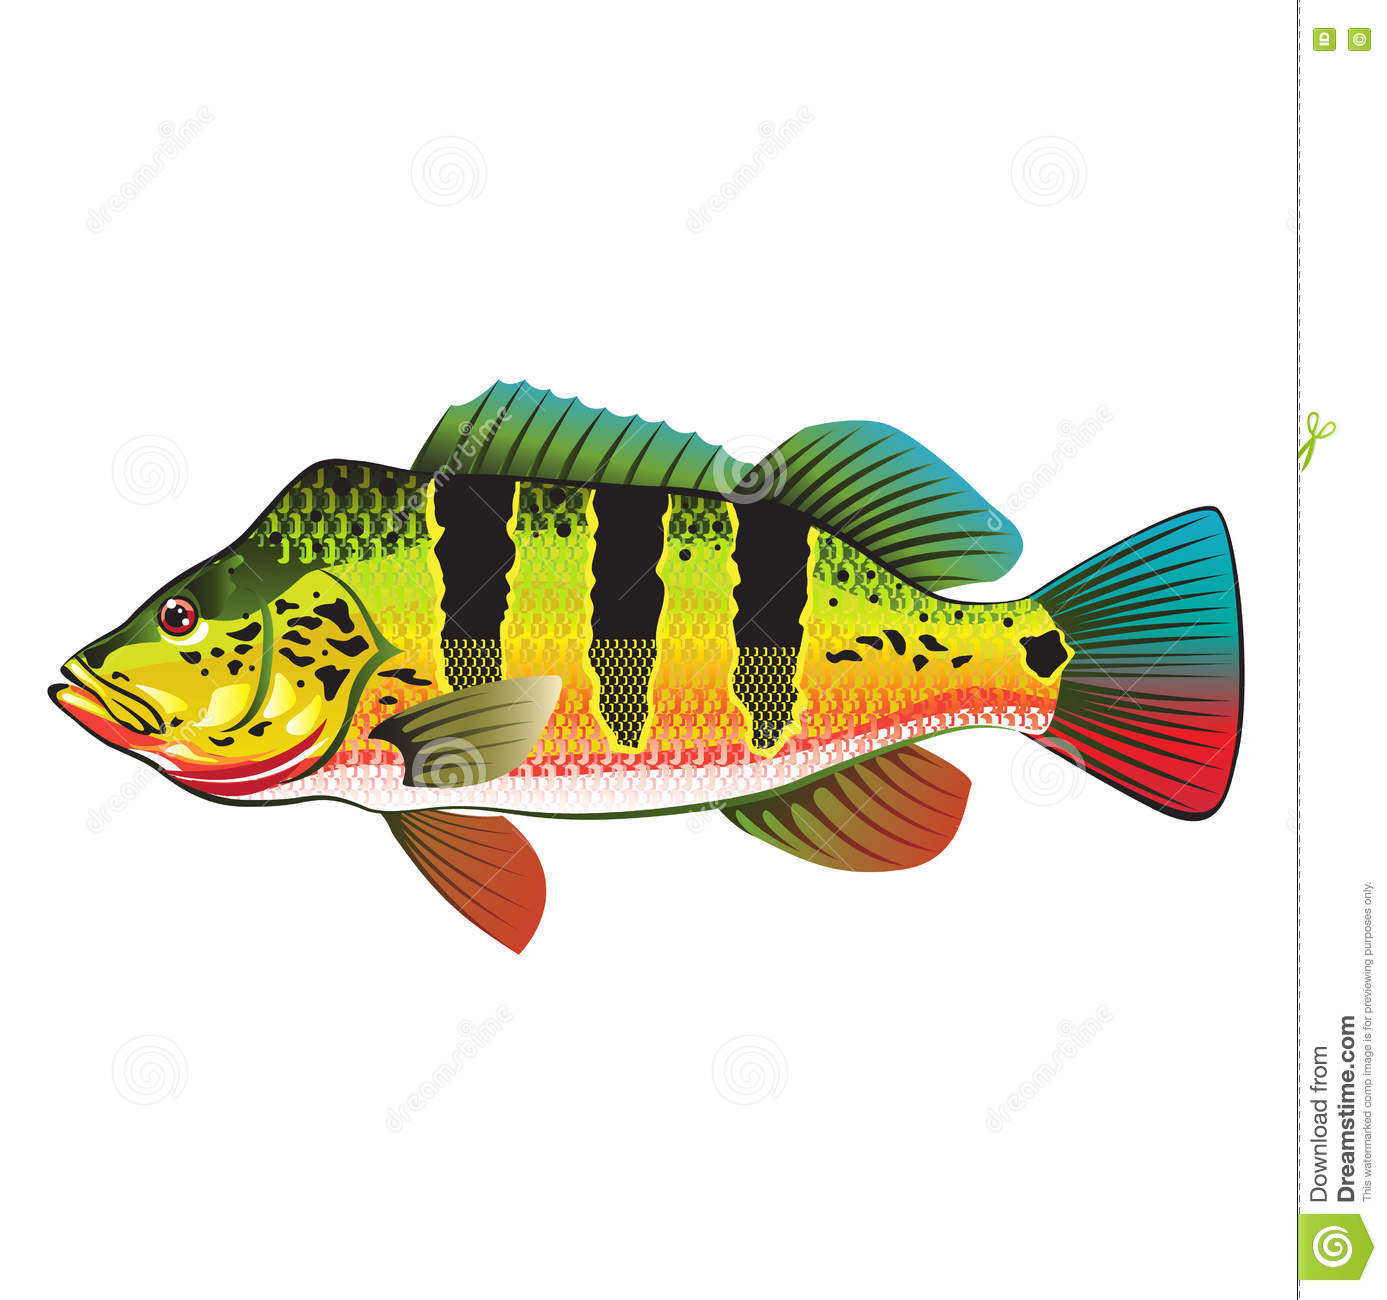 Peacock bass bright ocean gamefish illustration stock for Florida game and fish